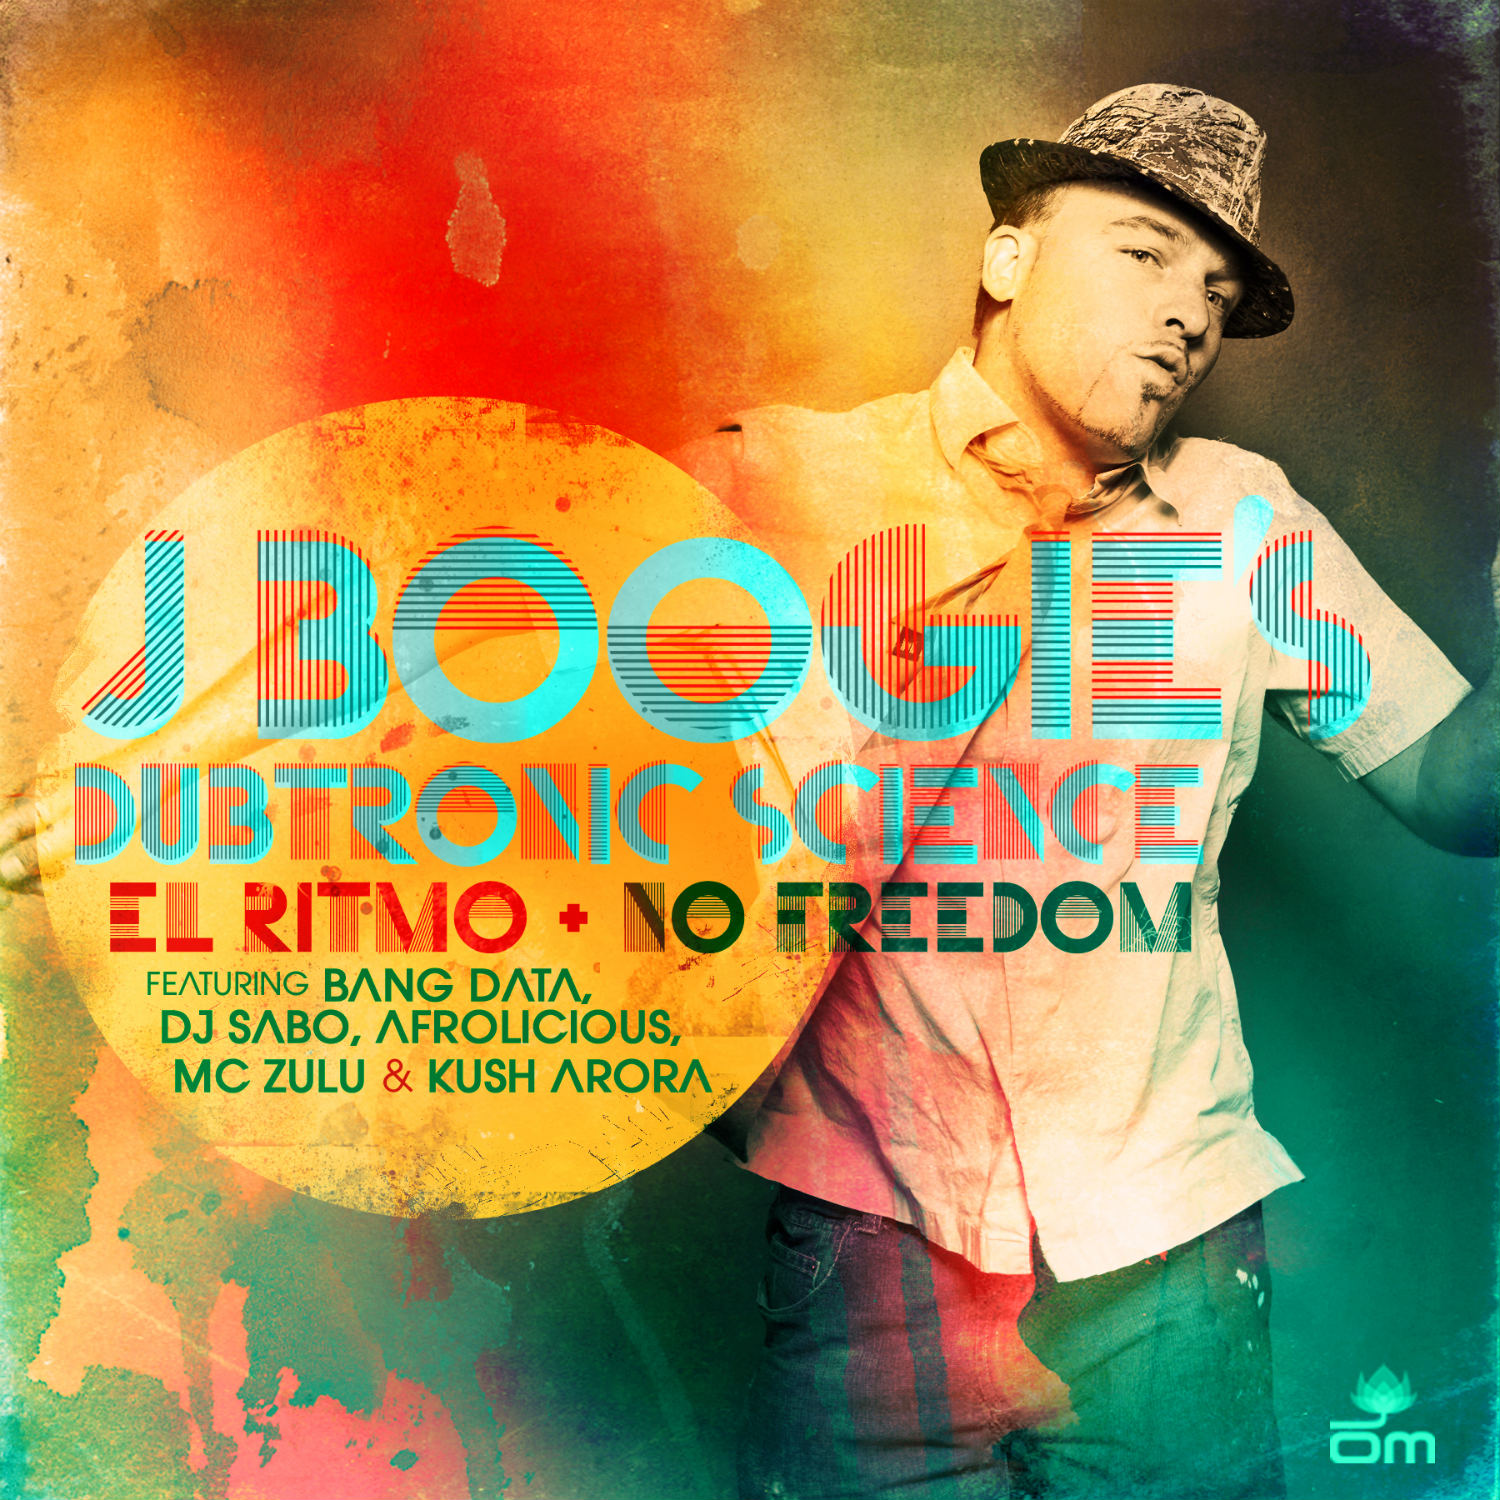 J Boogie's Dubtronic Science - El Ritmo + No Freedom